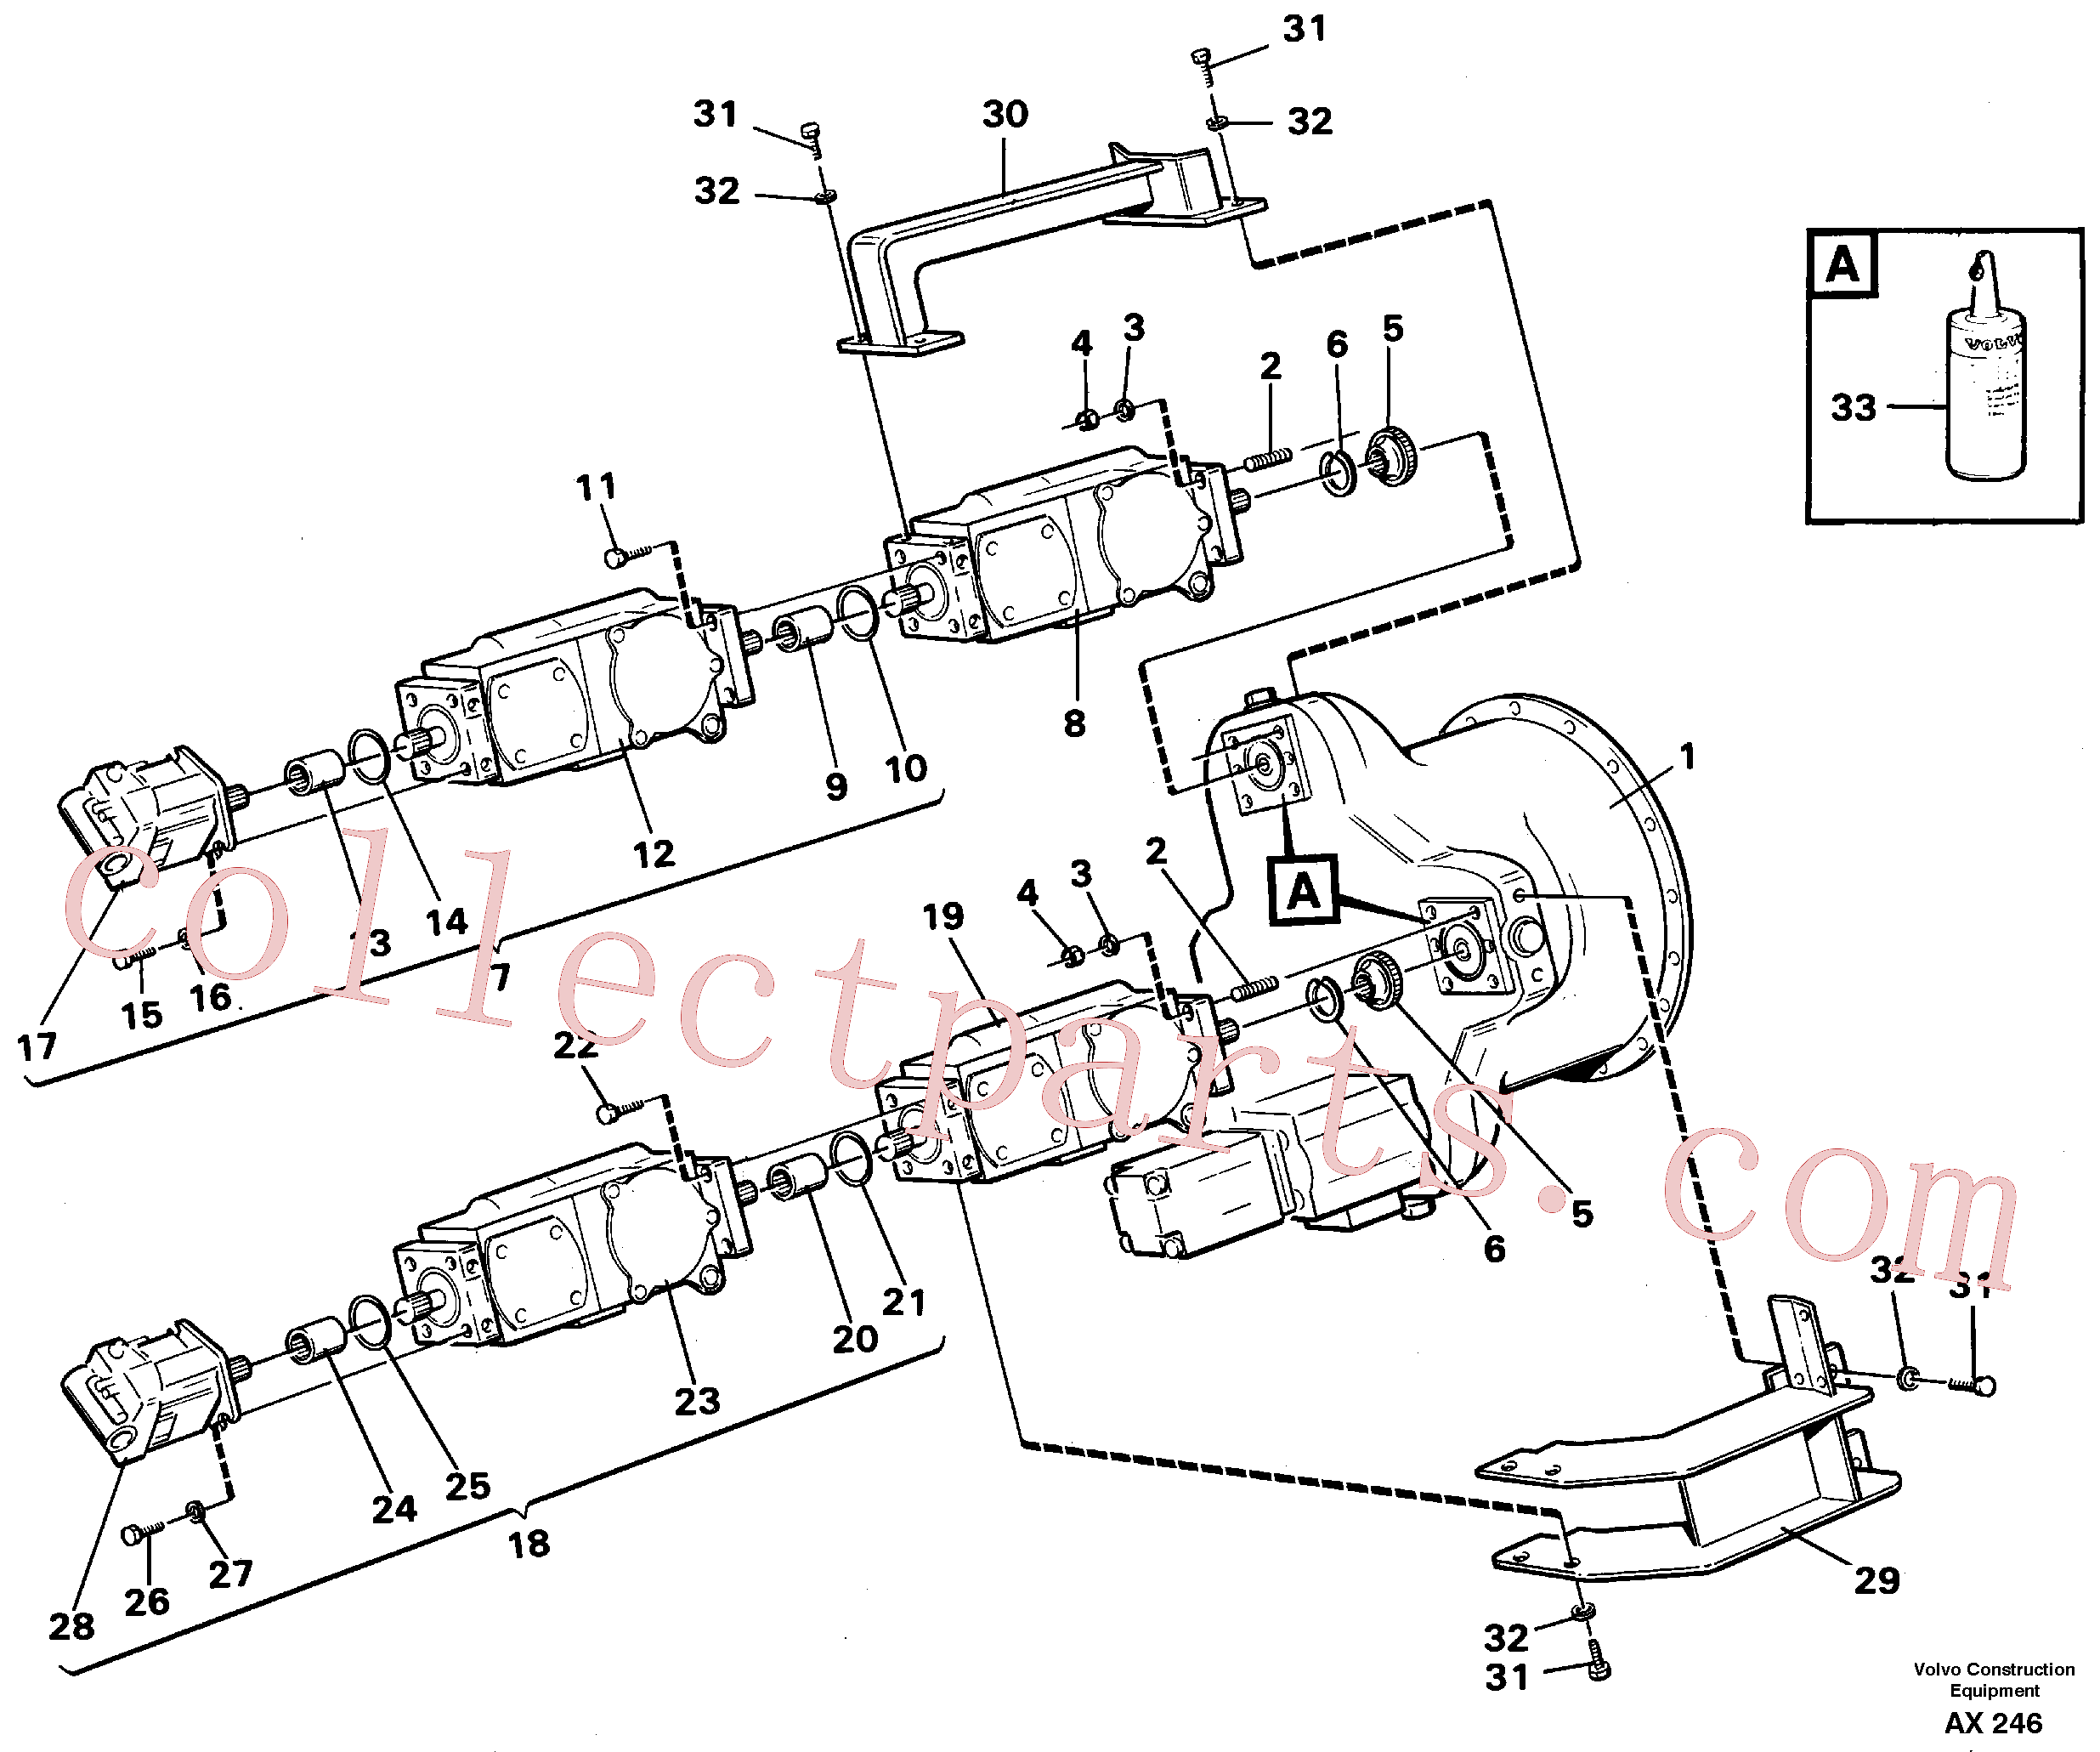 VOE11700112 for Volvo Hydraulic pump, assembly(AX246 assembly)